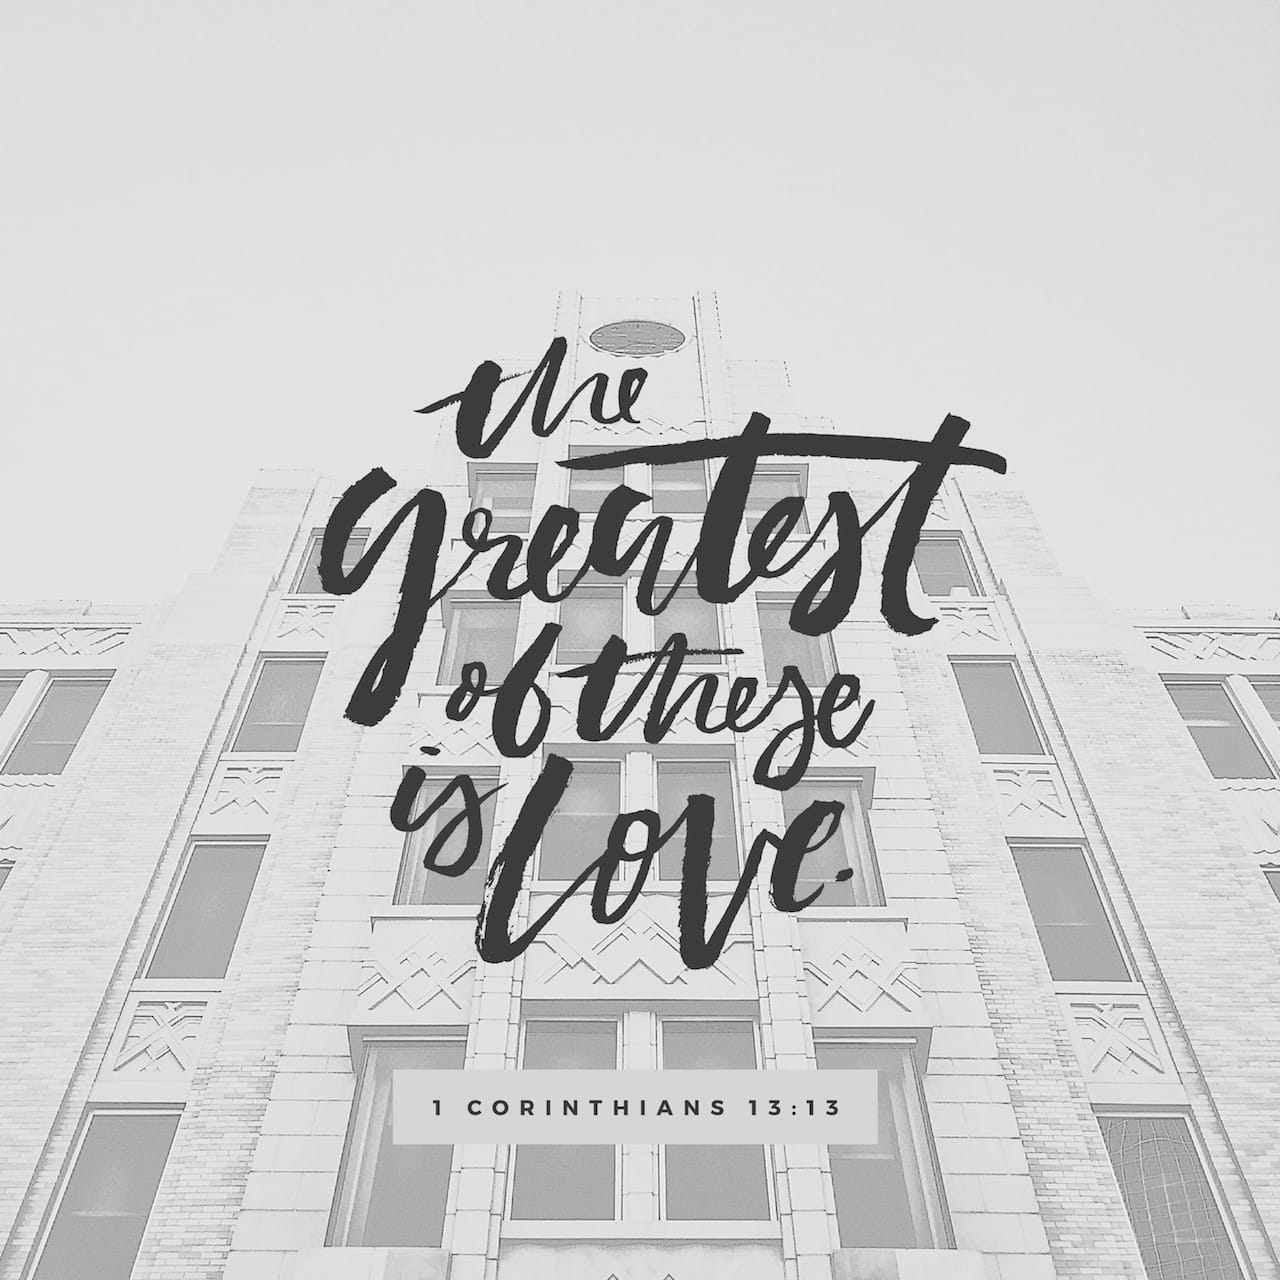 1 Corinthians 13:13 And now abideth faith, hope, charity, these three; but the greatest of these is charity. | King James Version (KJV)